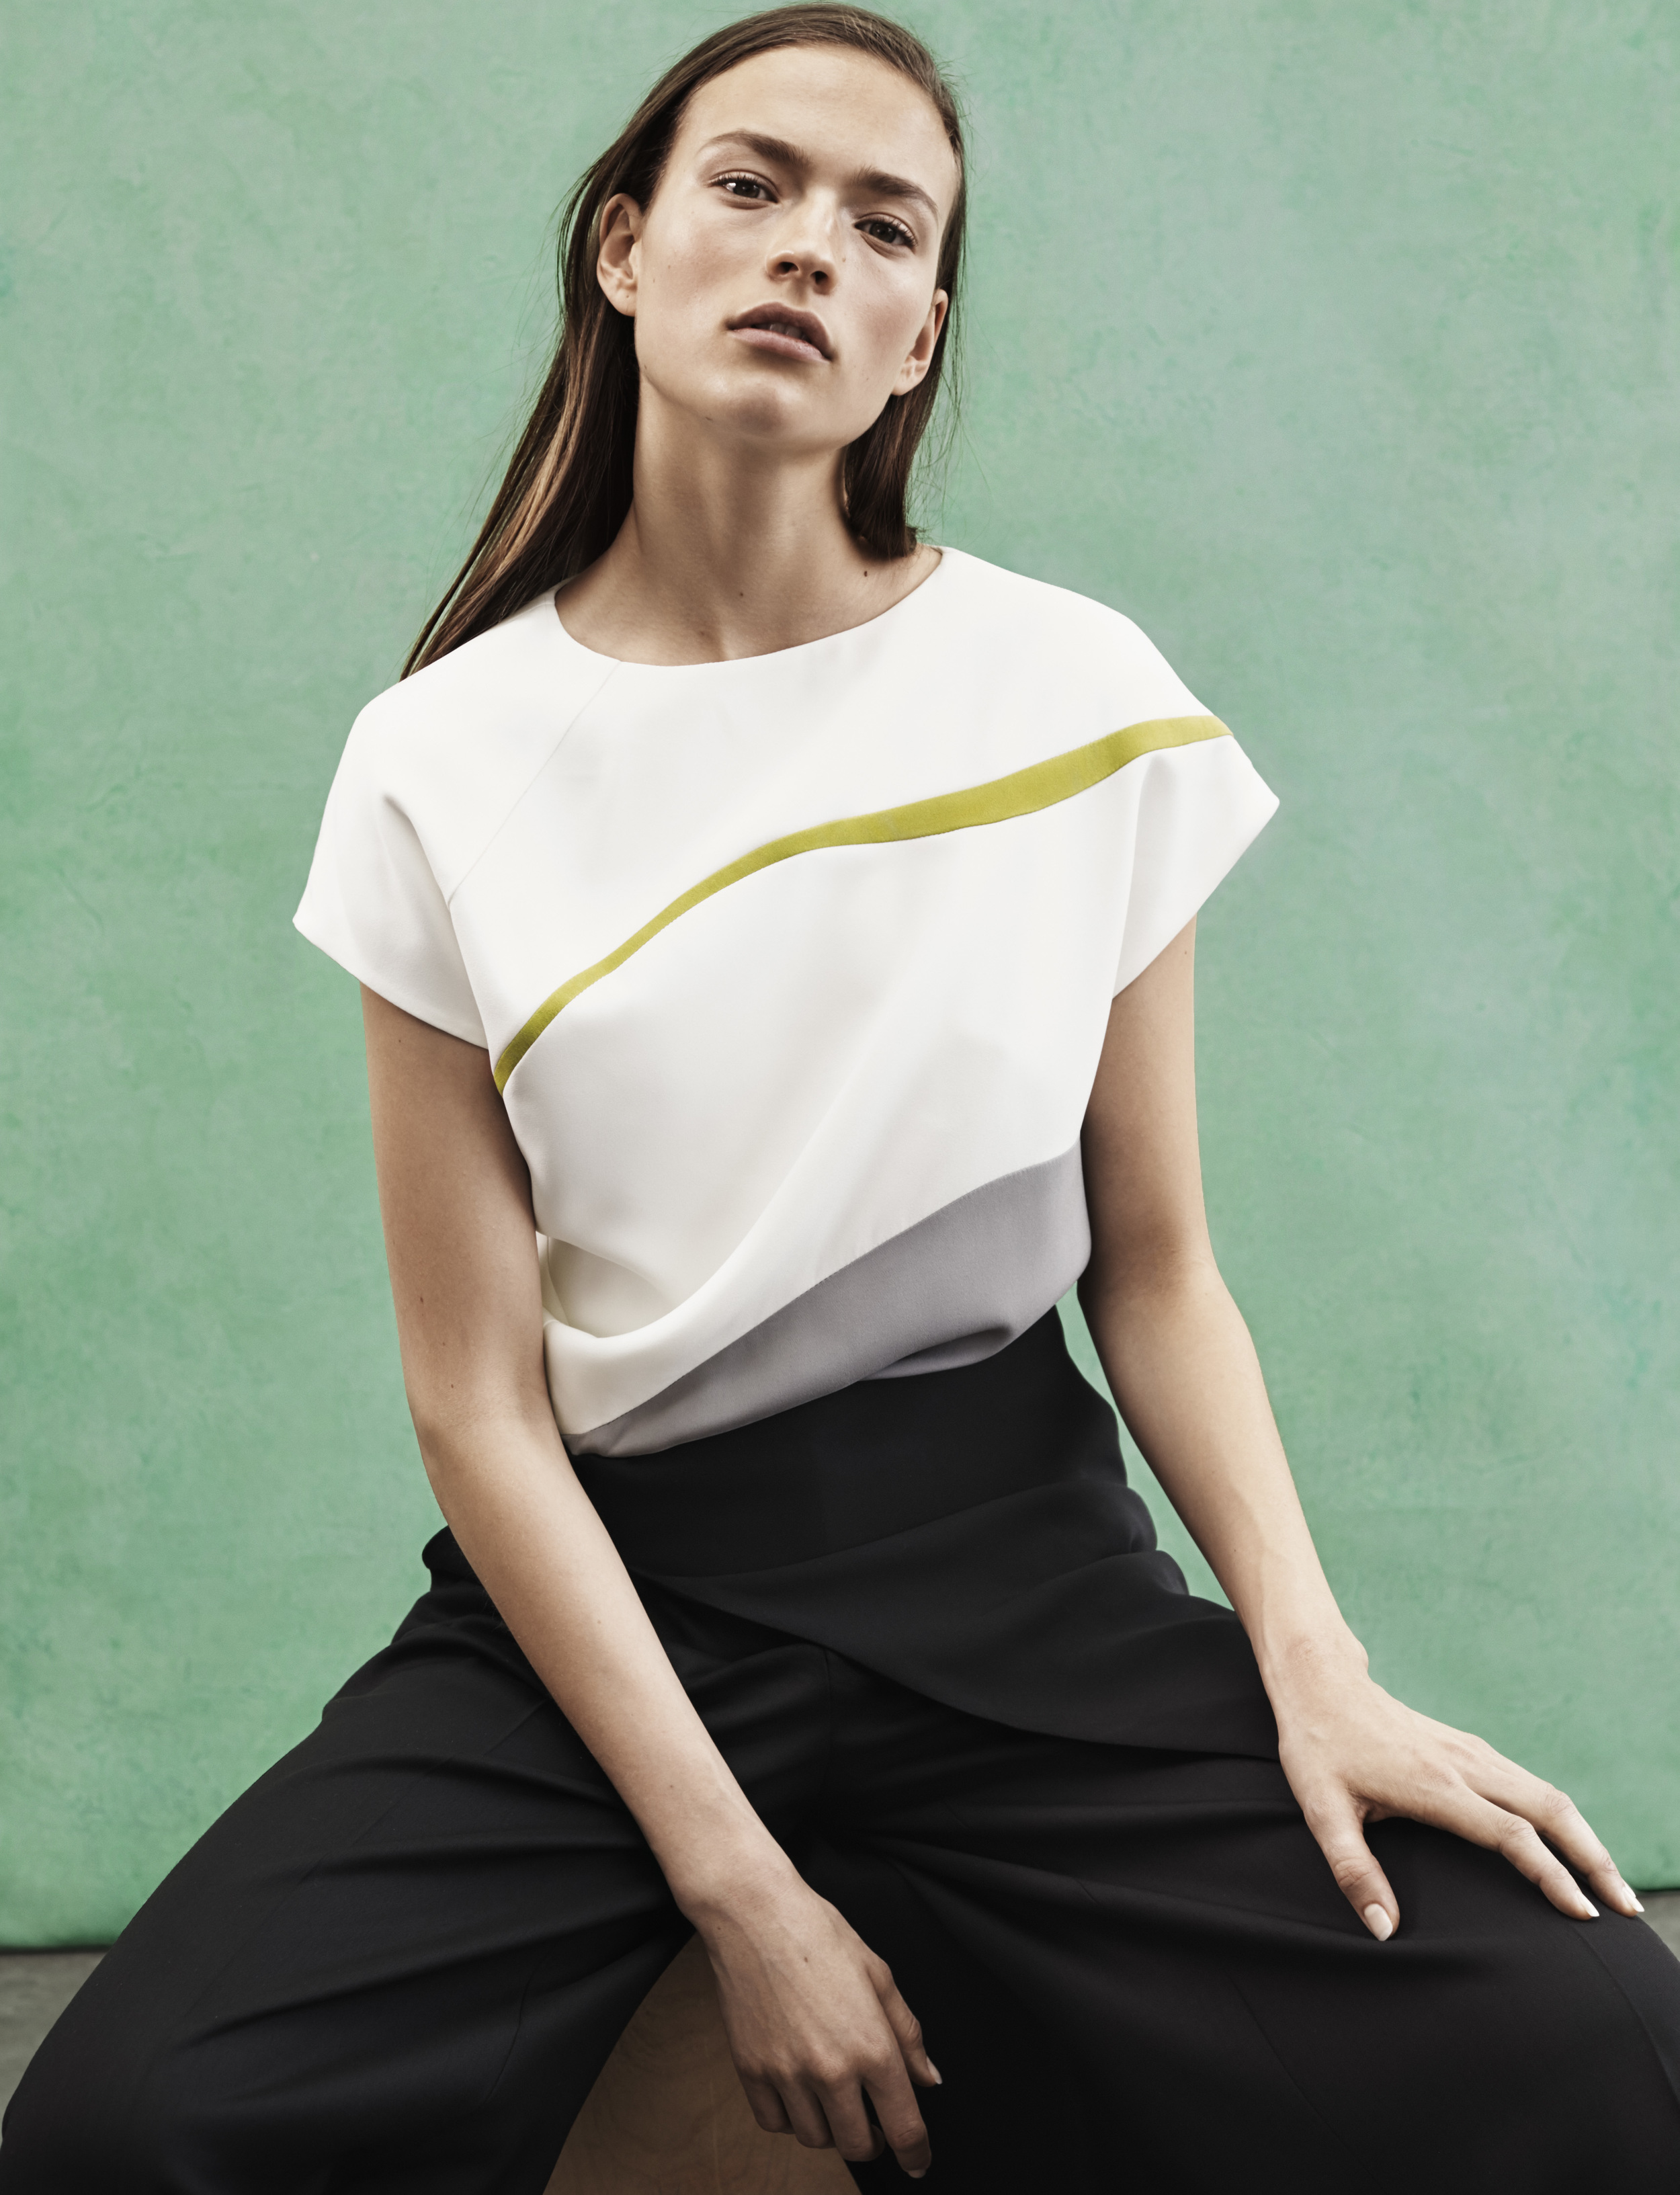 Look 8 White/green/grey silk crepe graphic top with black gabardine pant.